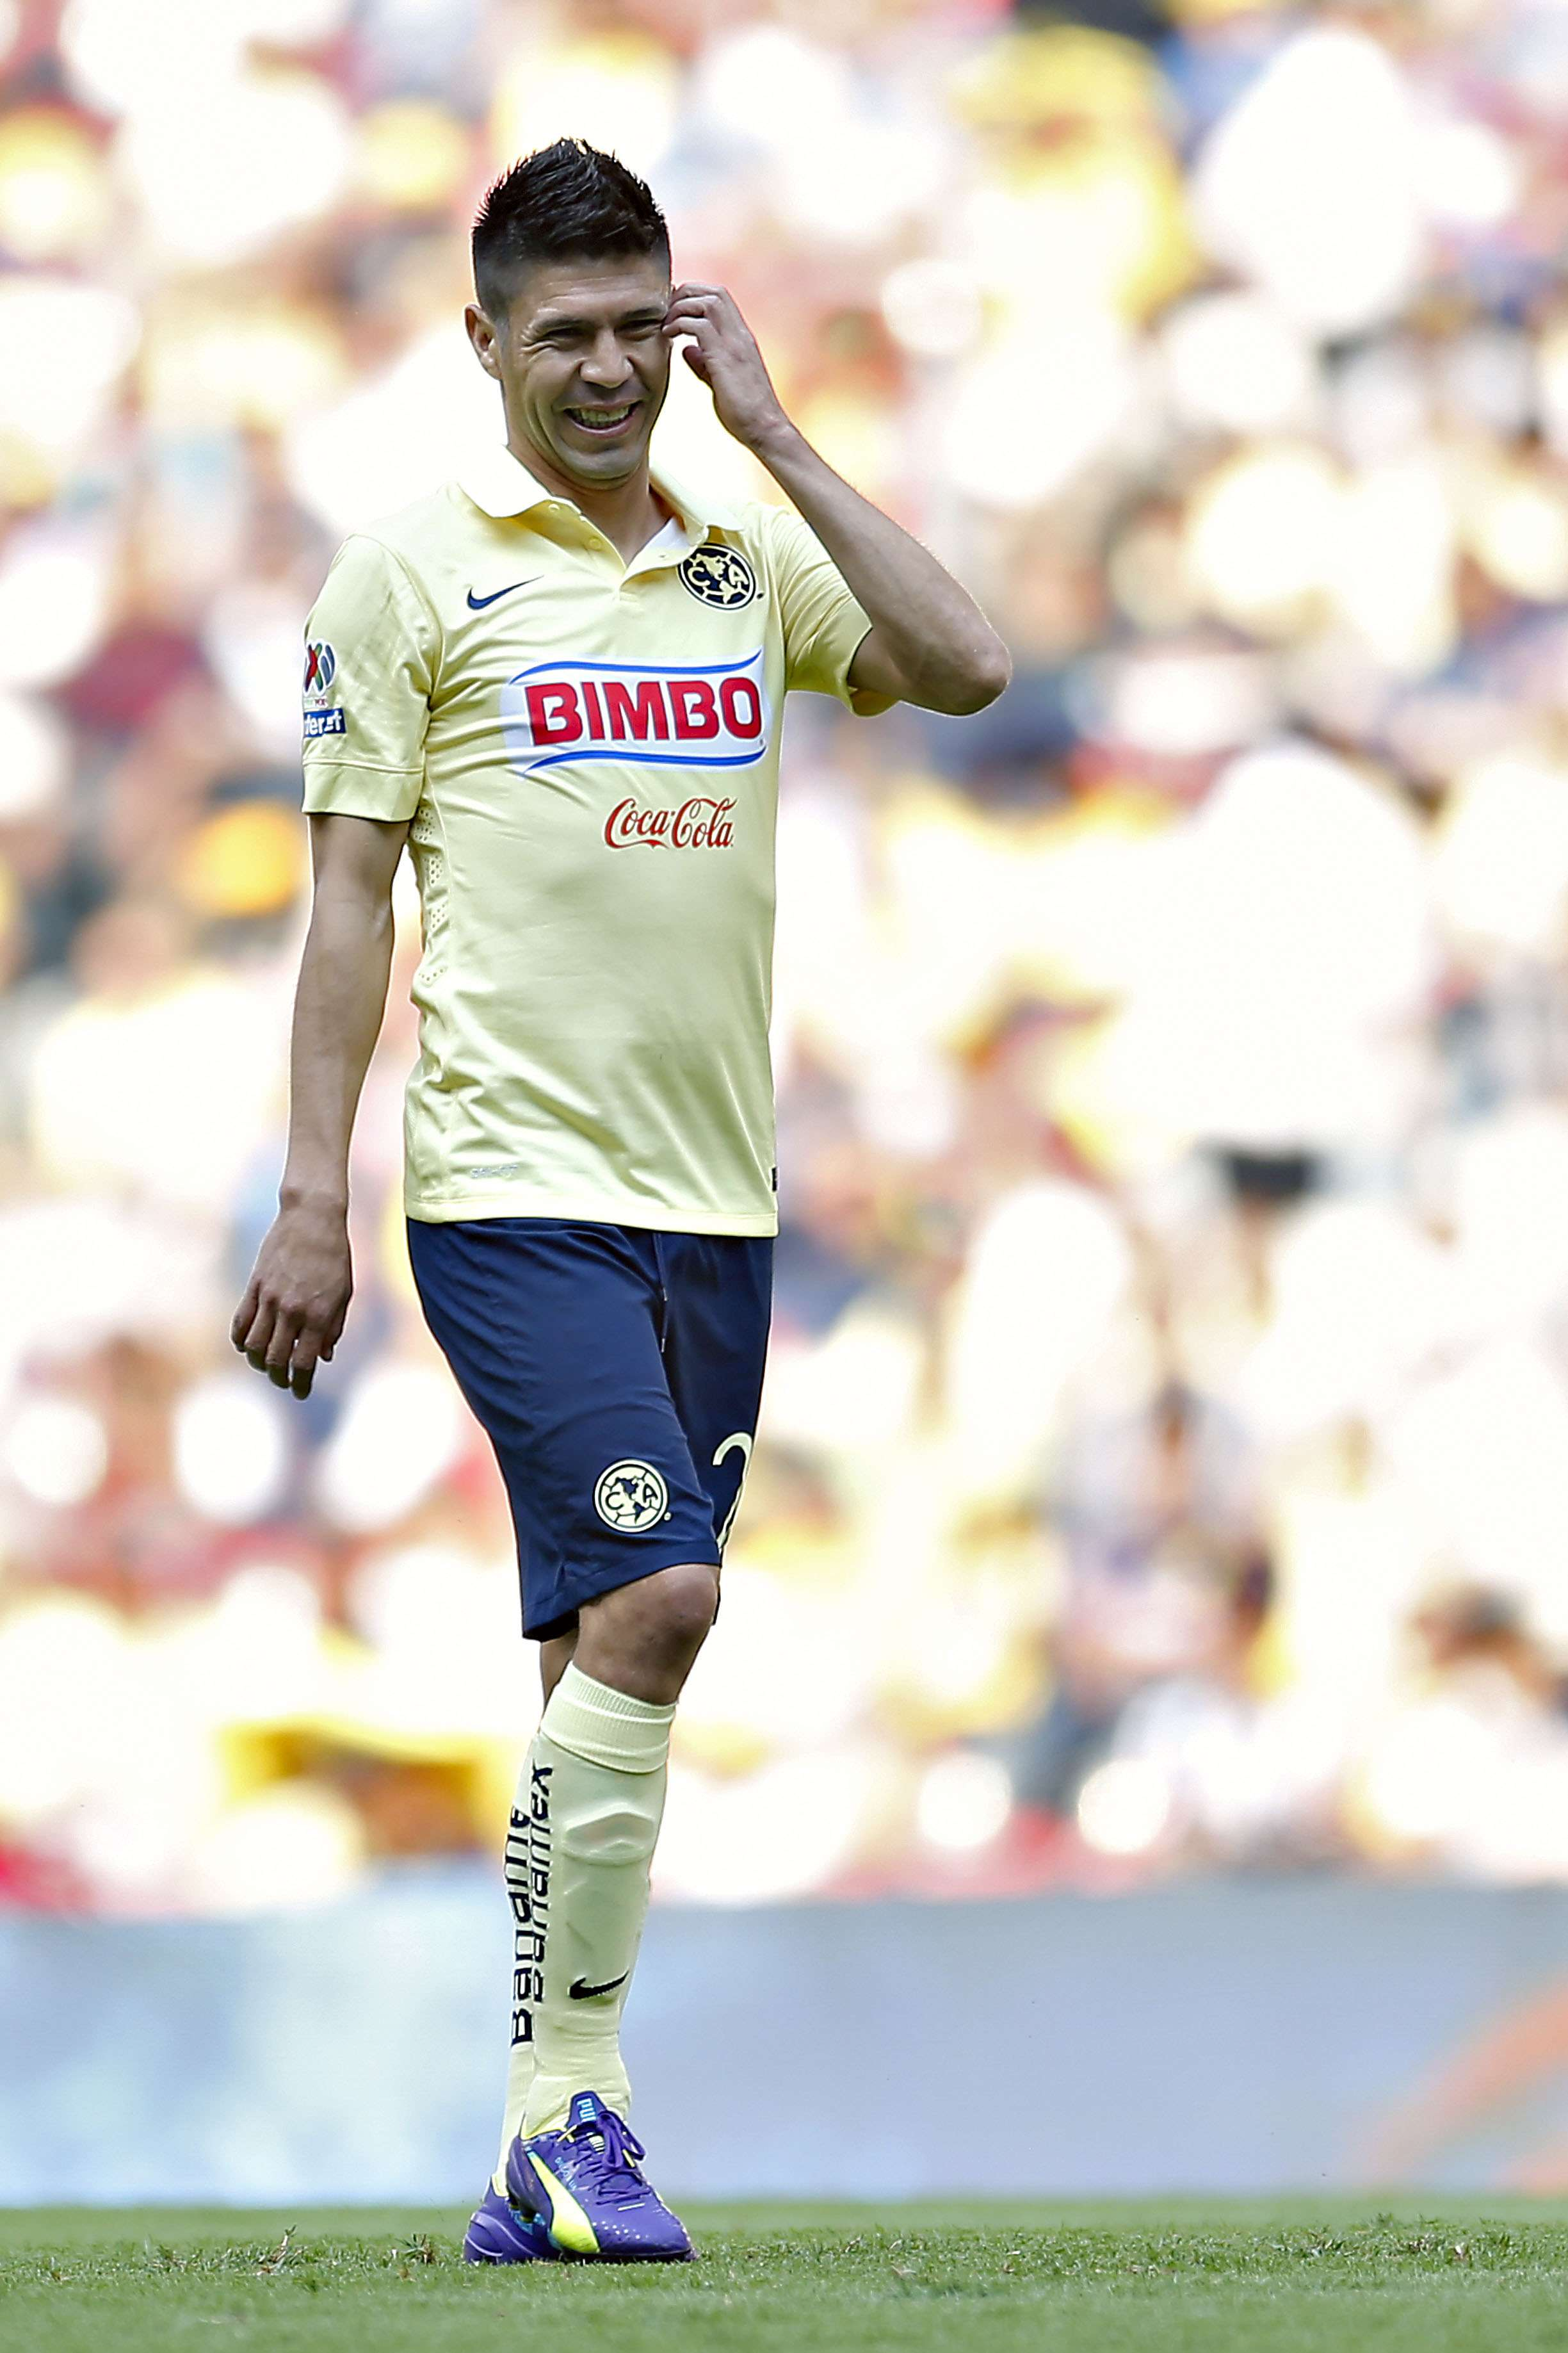 Oribe Peralta, delantero del América y que podría tener problemas con la justicia. Foto: Imago 7